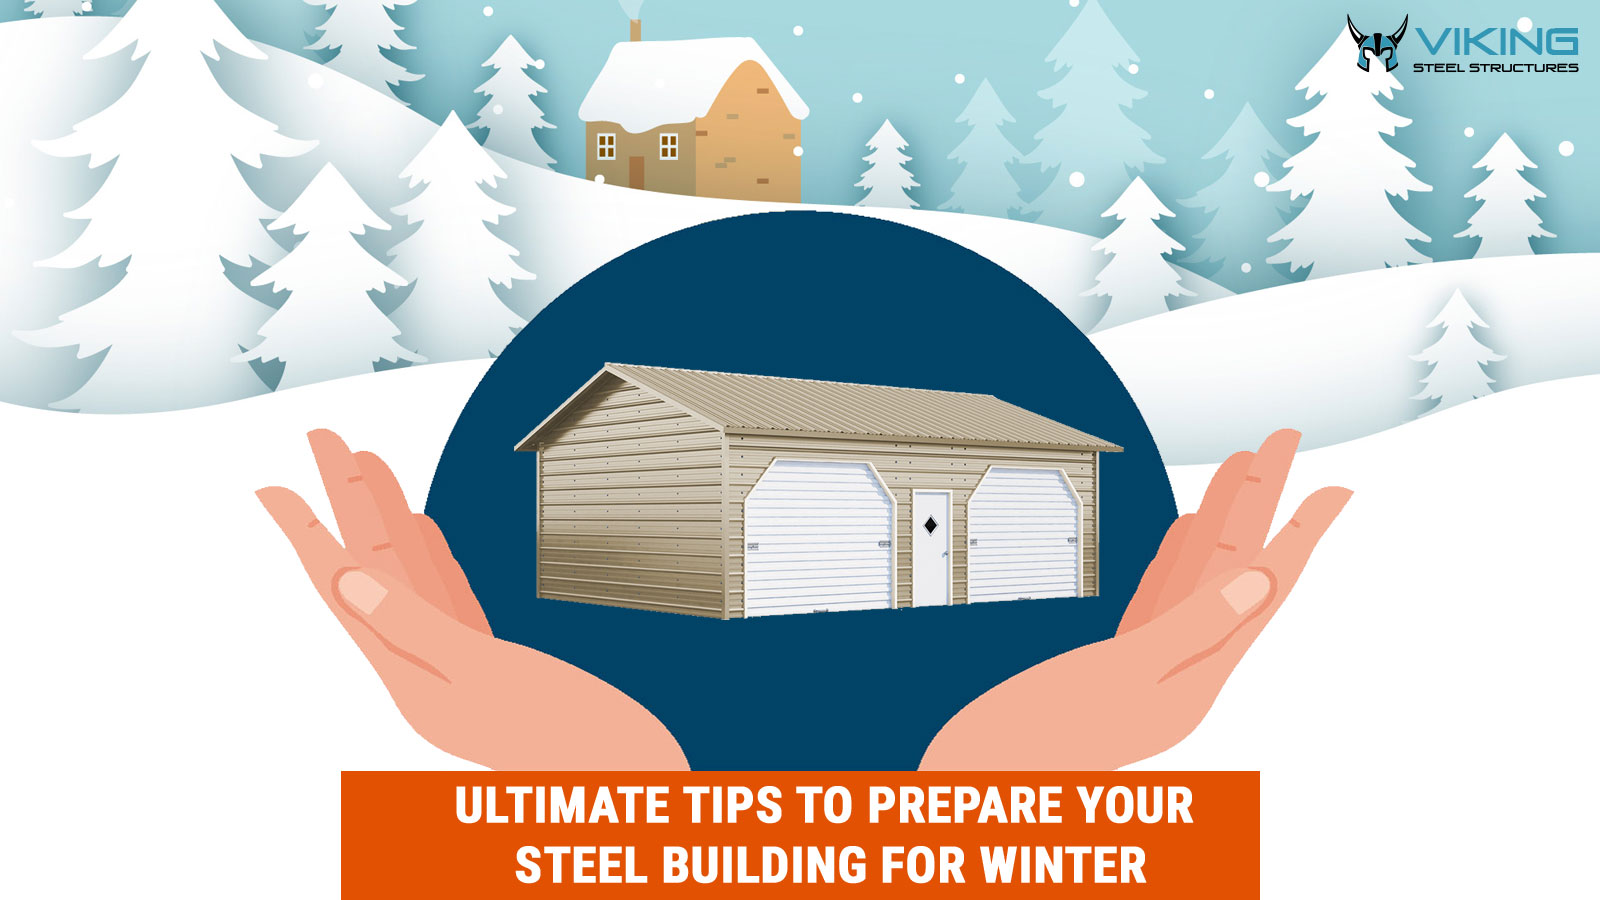 Ultimate Tips to Prepare Your Steel Building for Winter